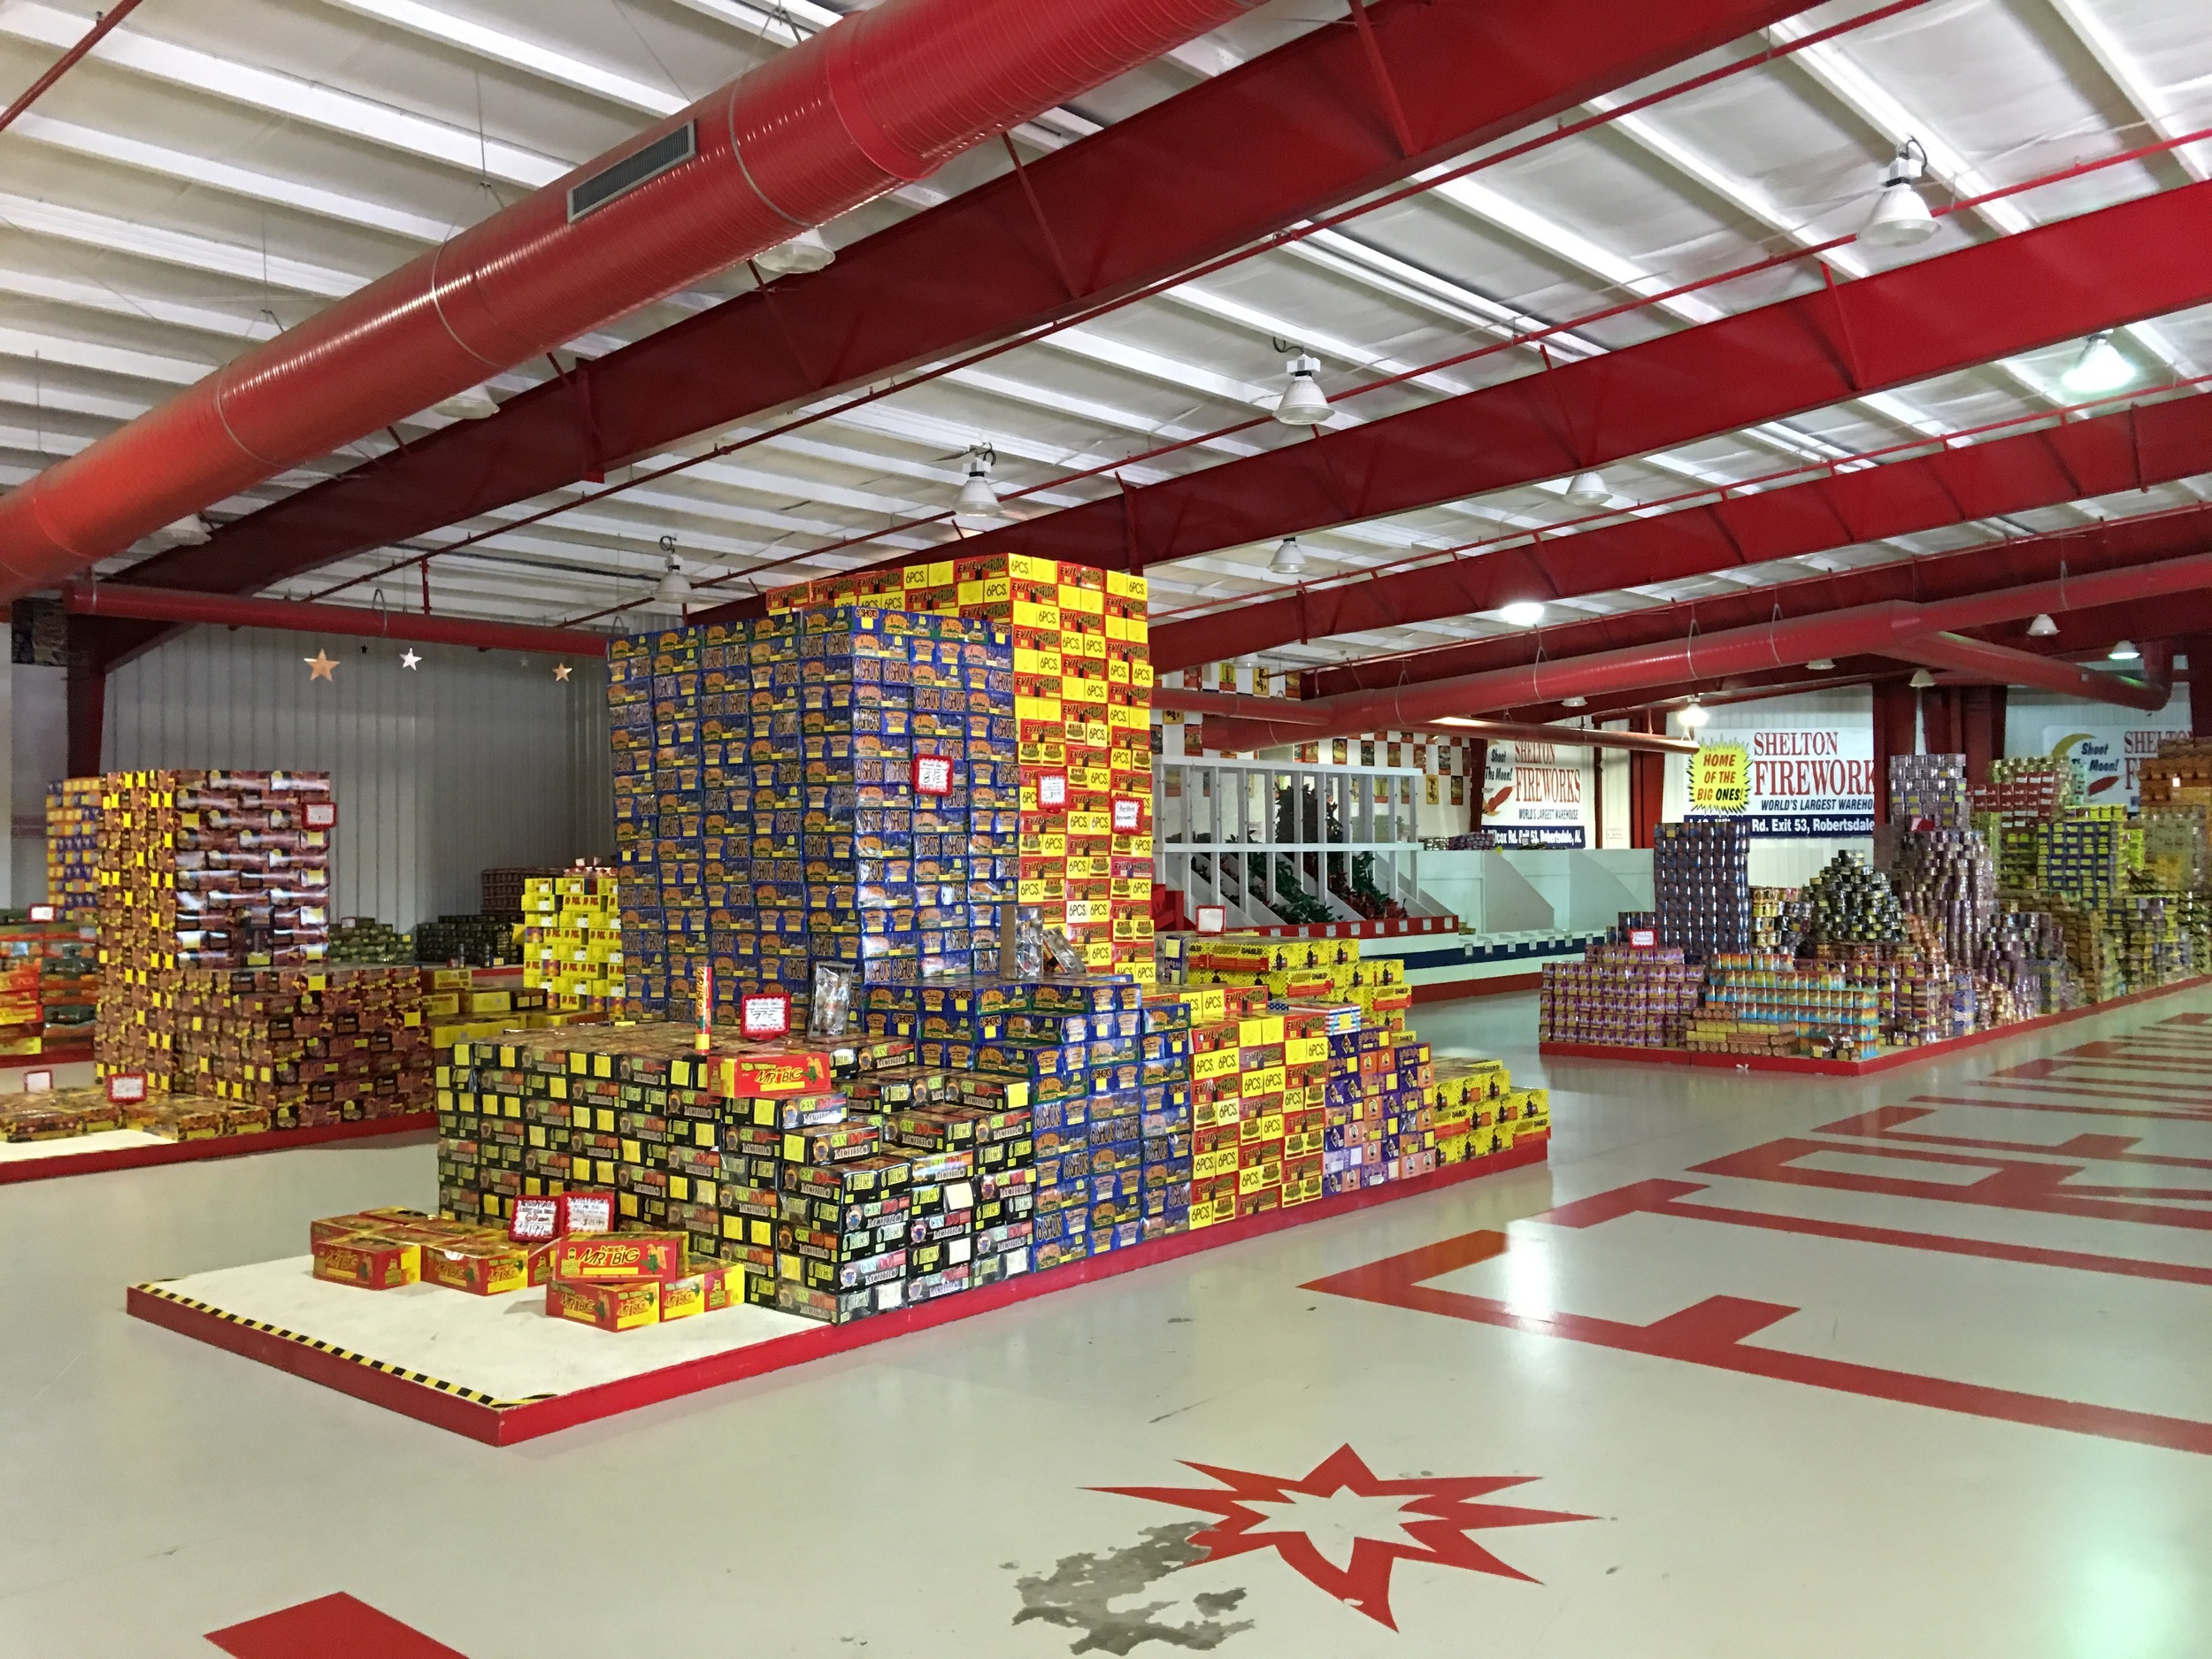 Inside firework mecca, Shelton Fireworks in Alabama.